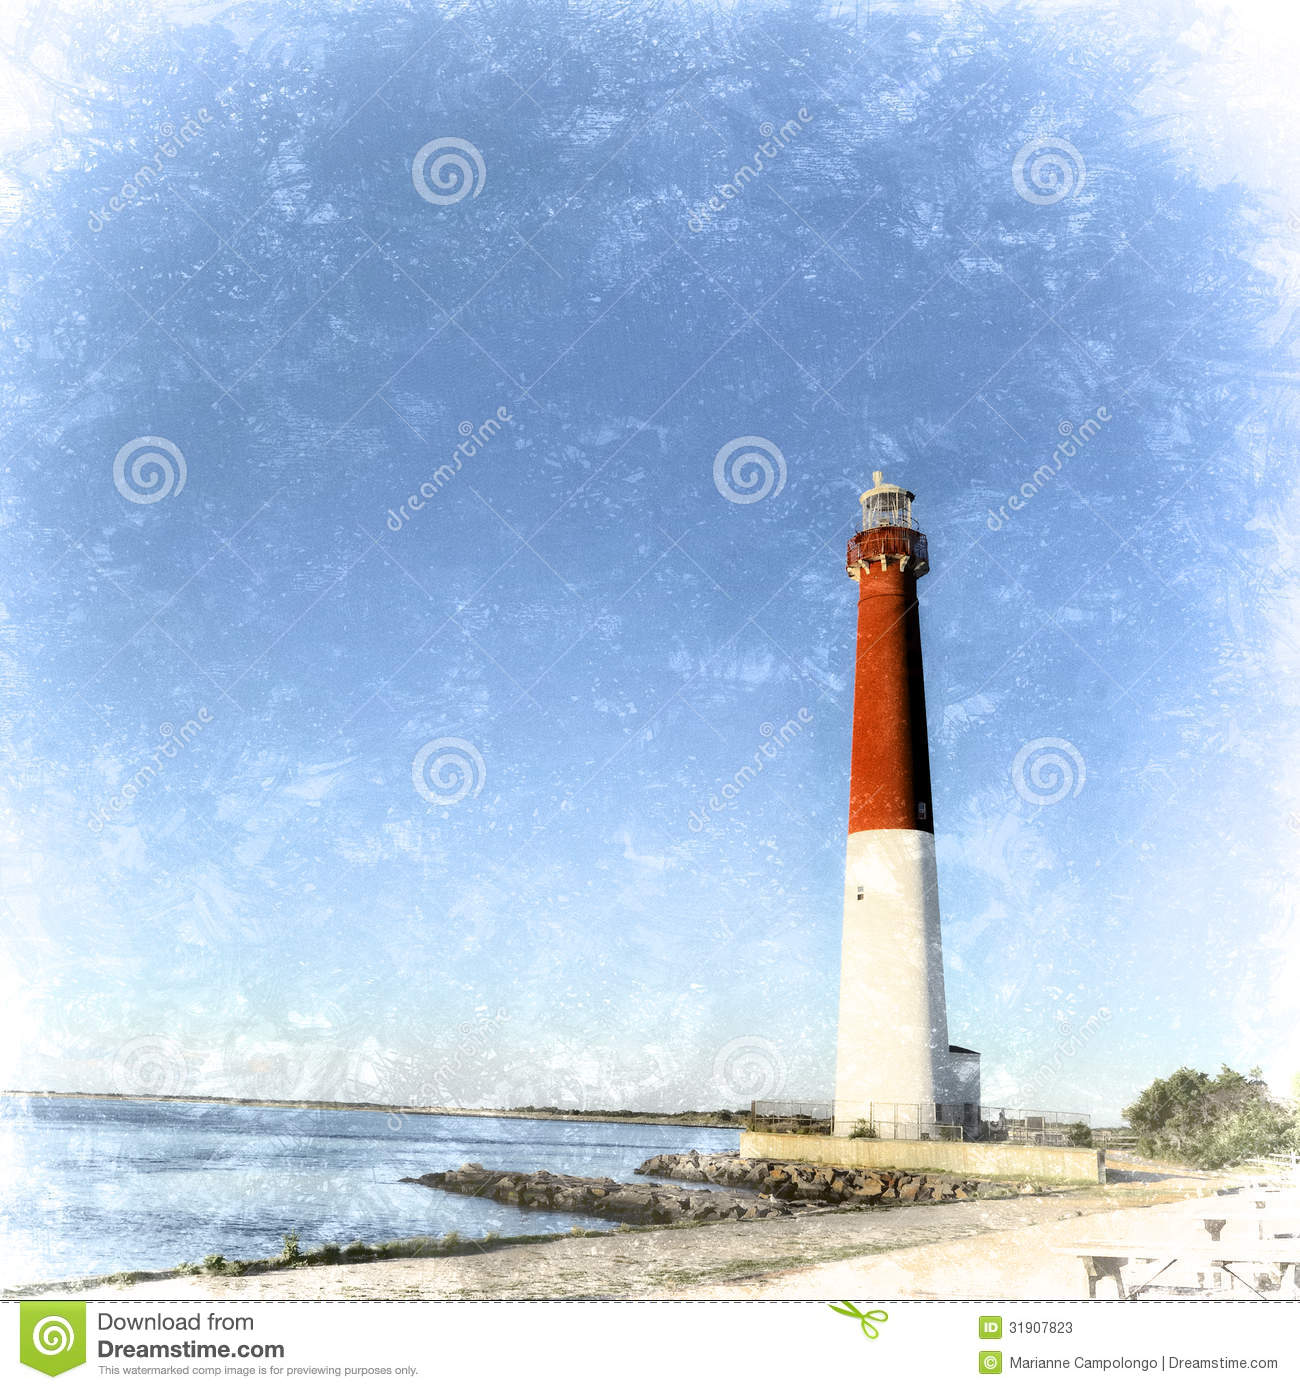 Island Beach State Park Nj: Retro Barnegat Lighthouse, Barnegat Light, New Jersey